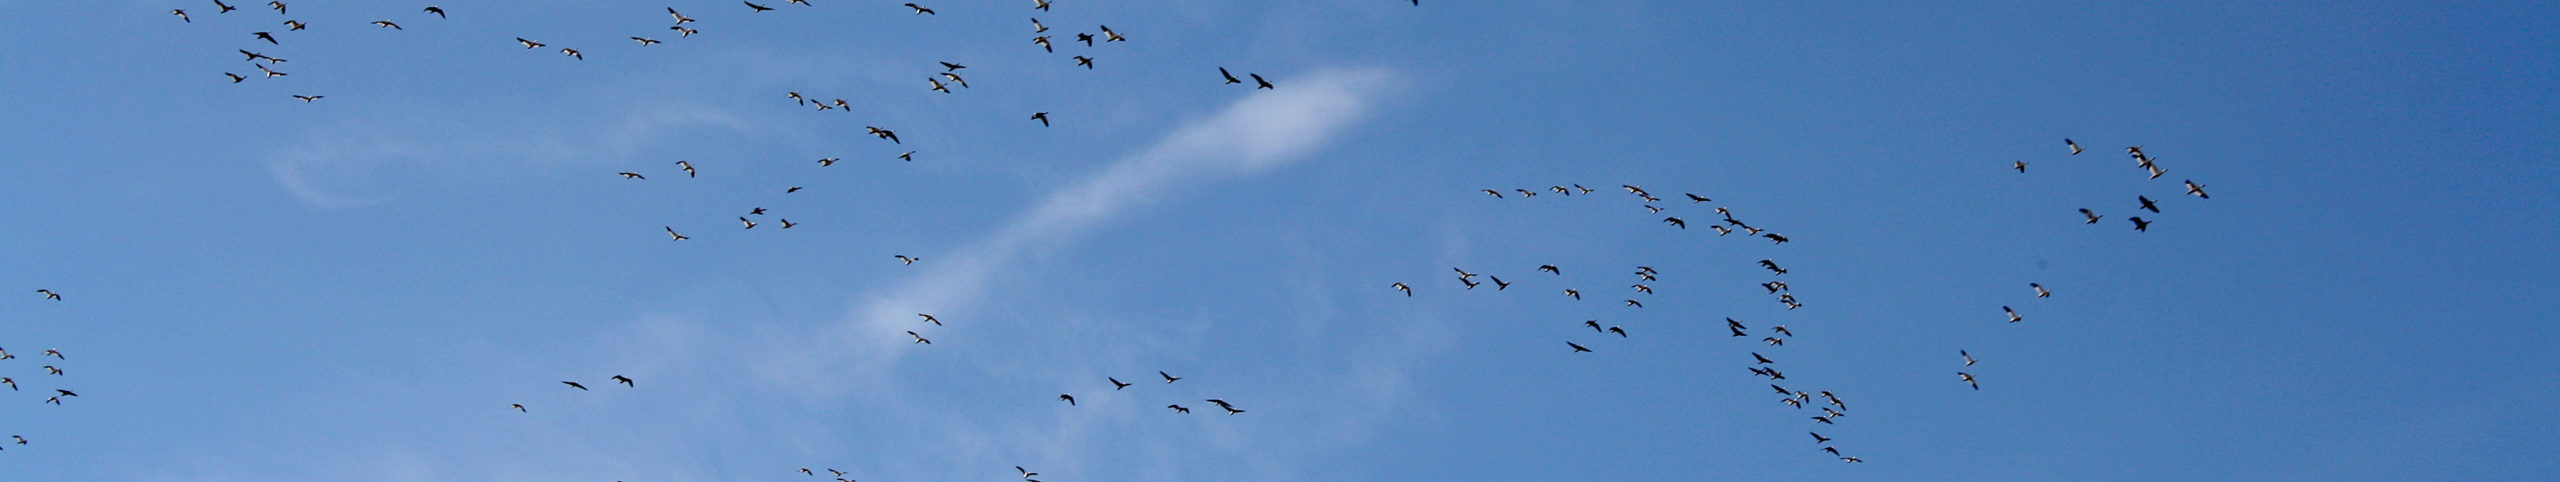 Geese flying against a blue sky.